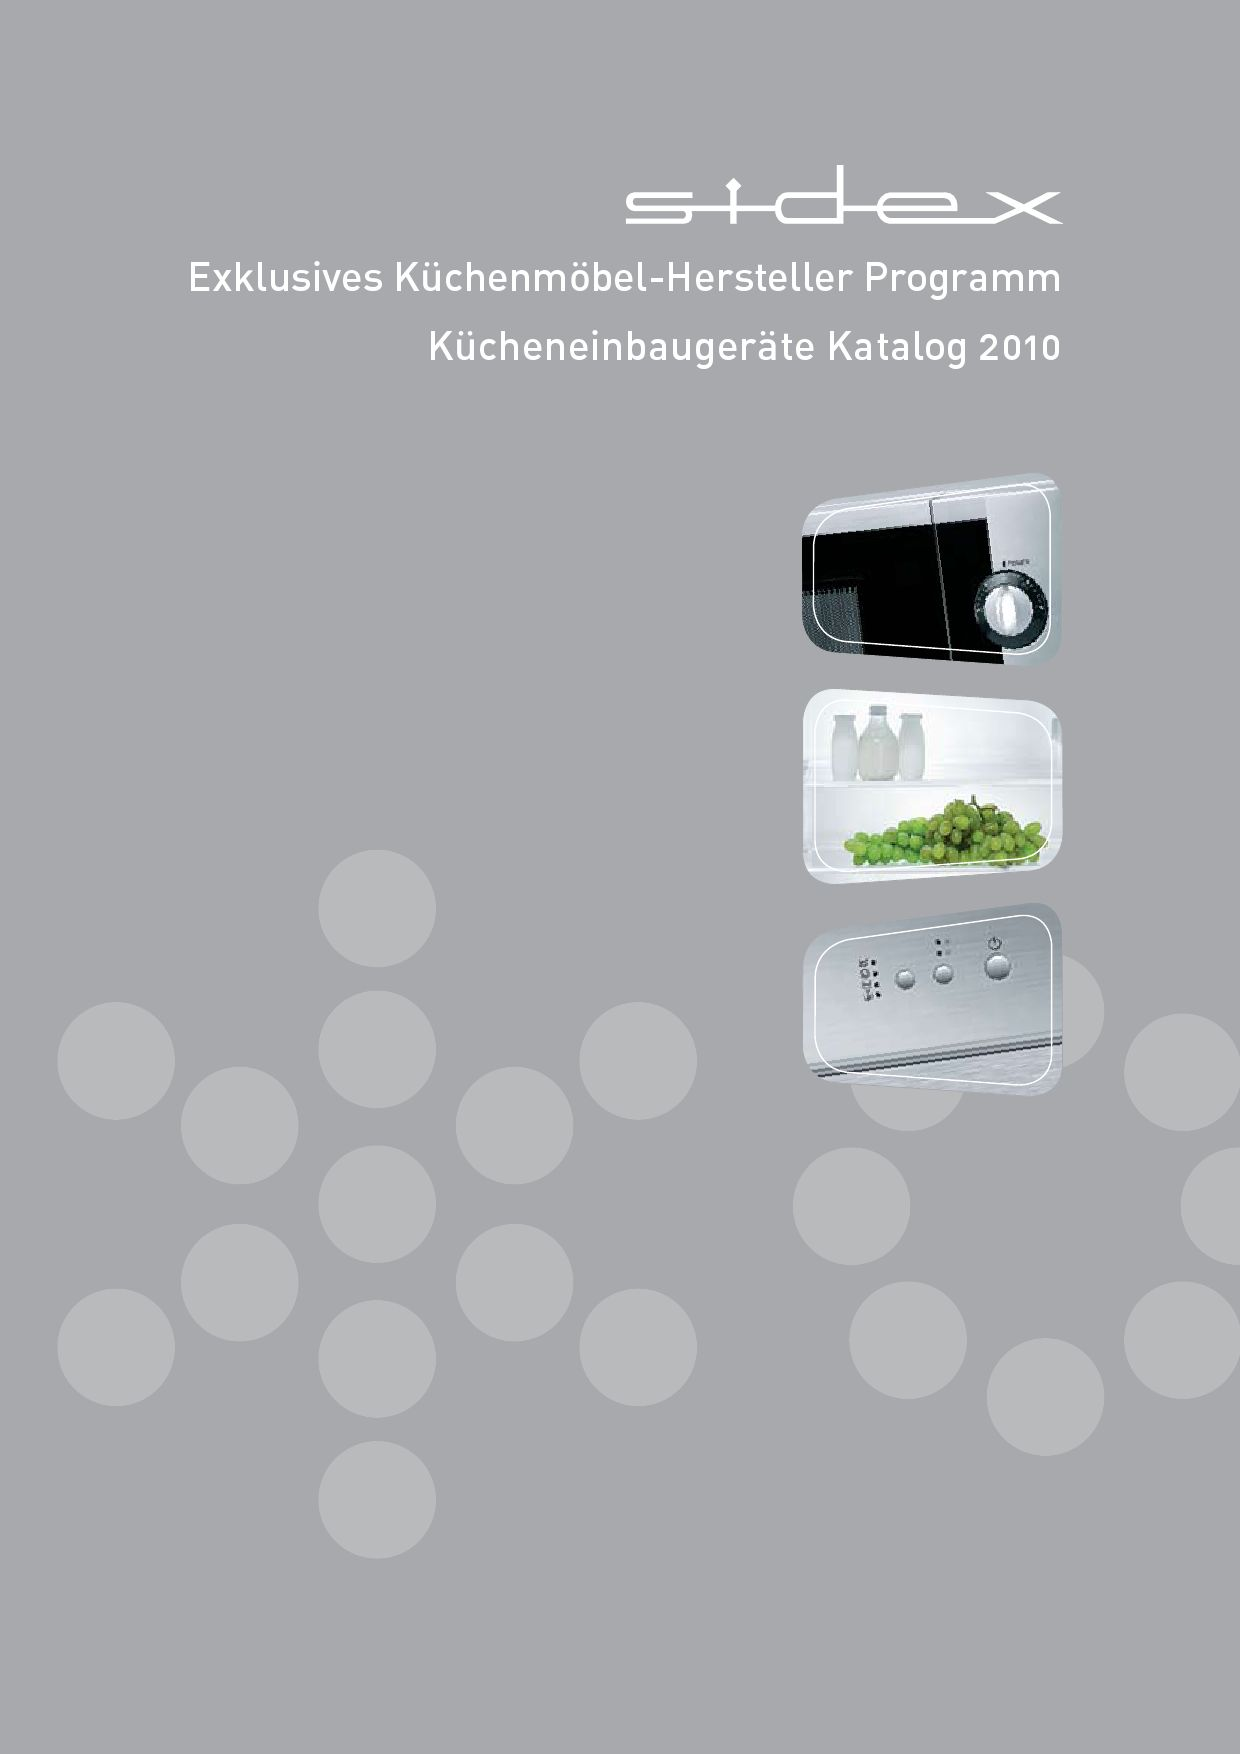 sidex catalogue germany by gorenje d d issuu